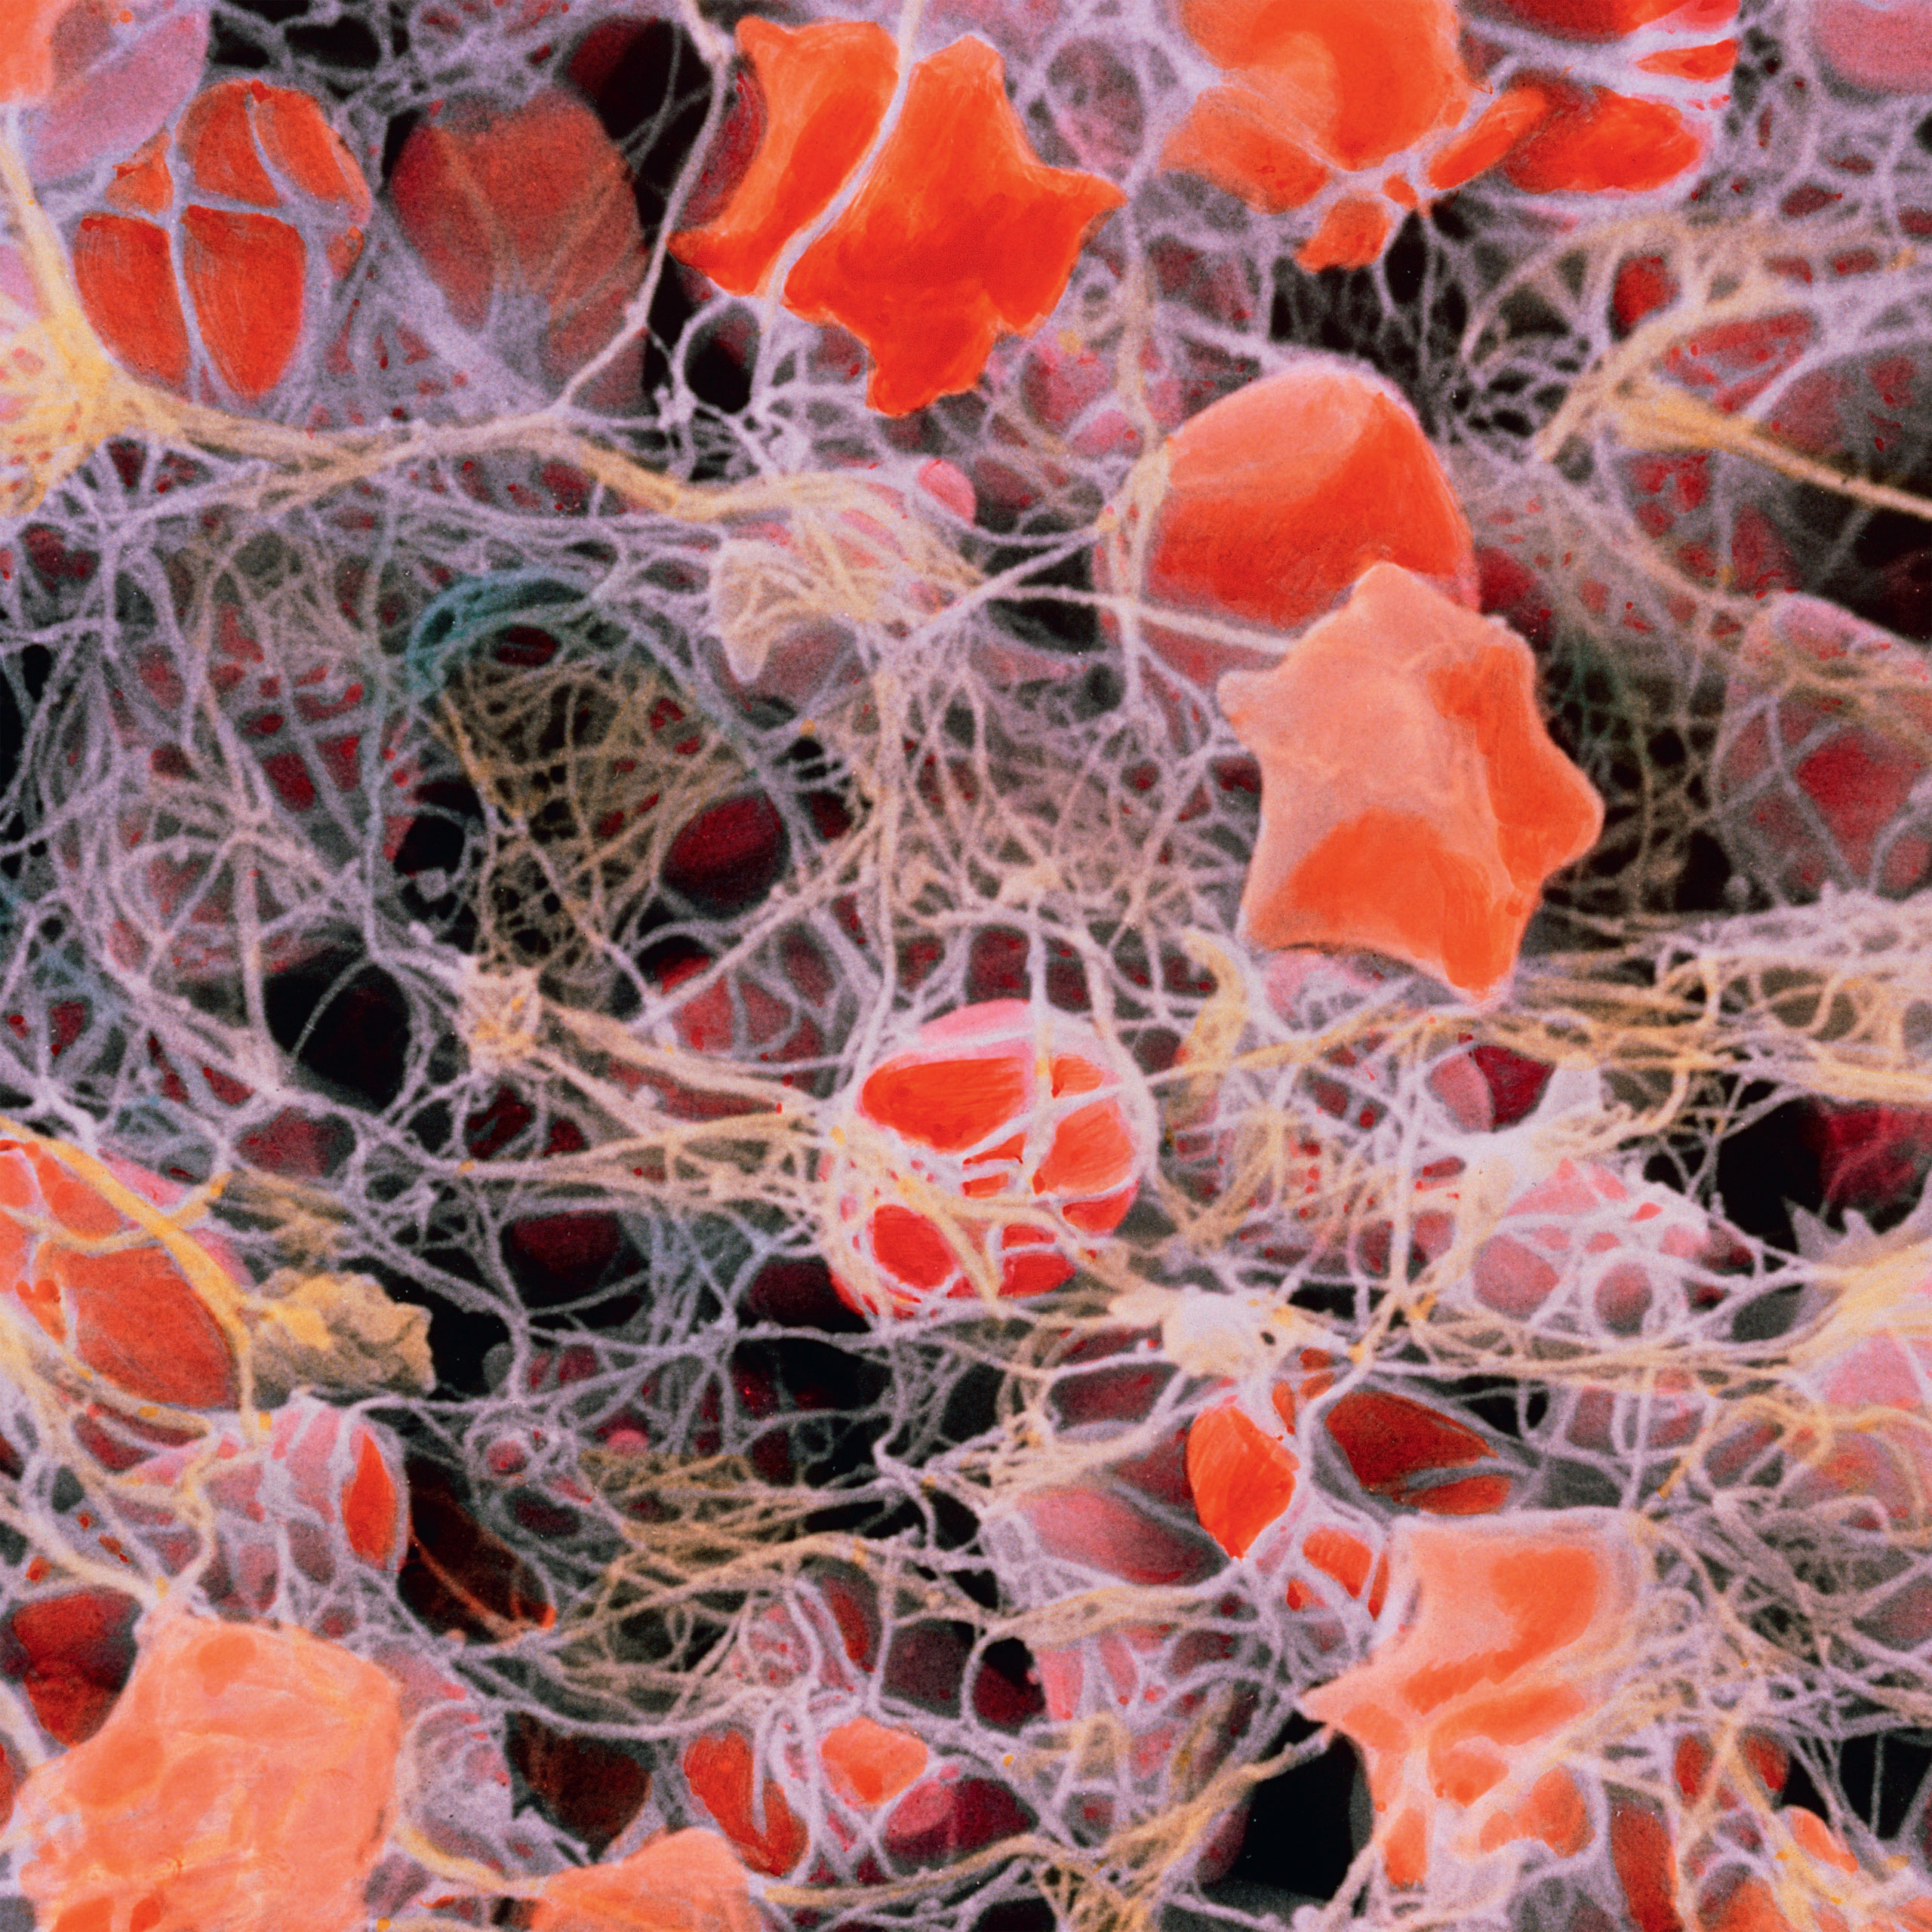 <b>Blood clot</b> (colored scanning electron micrograph)